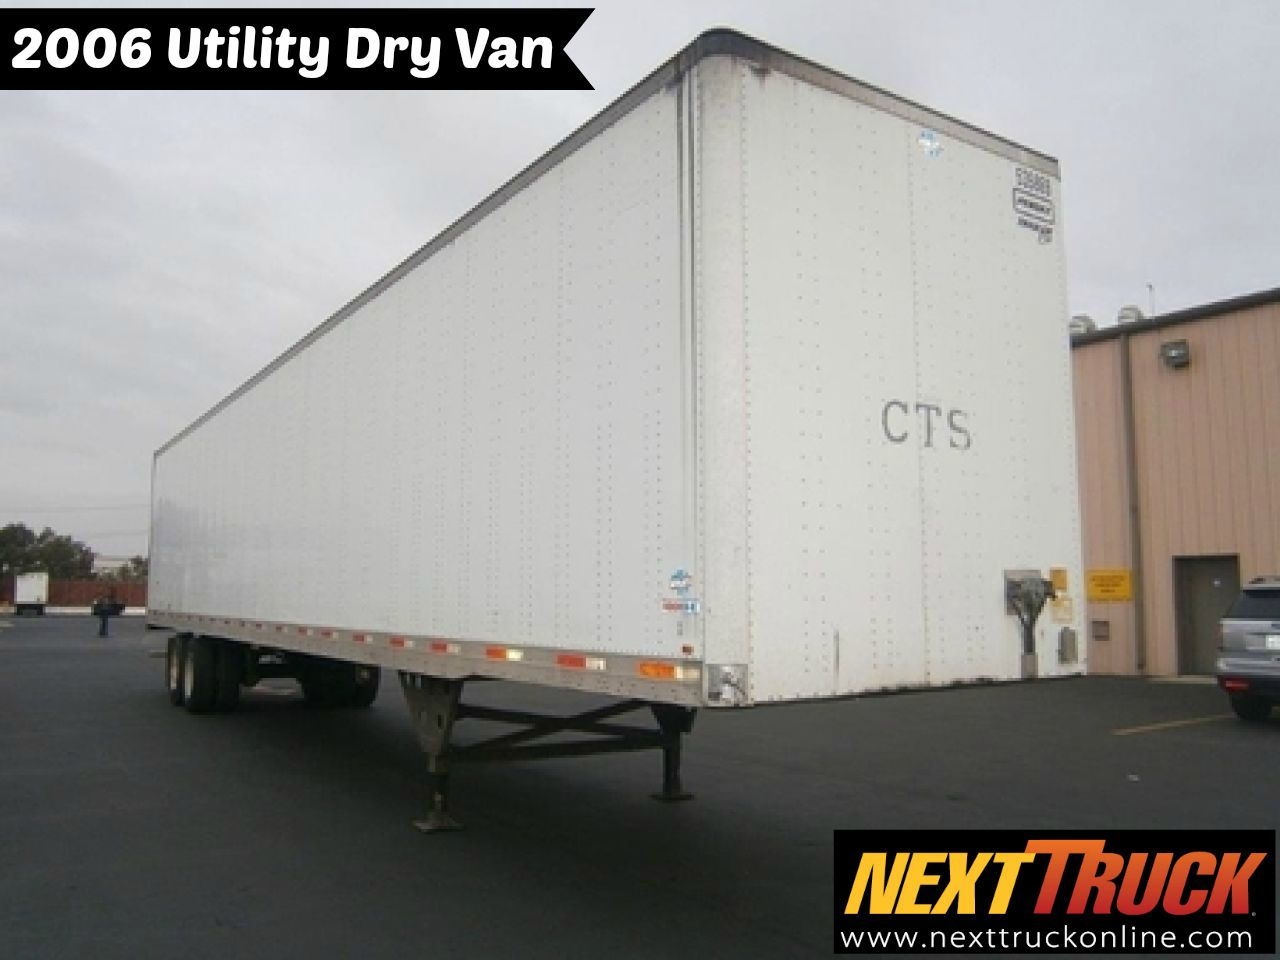 Our featured trailer is a 2006 Utility 53 x 102 Dry Van